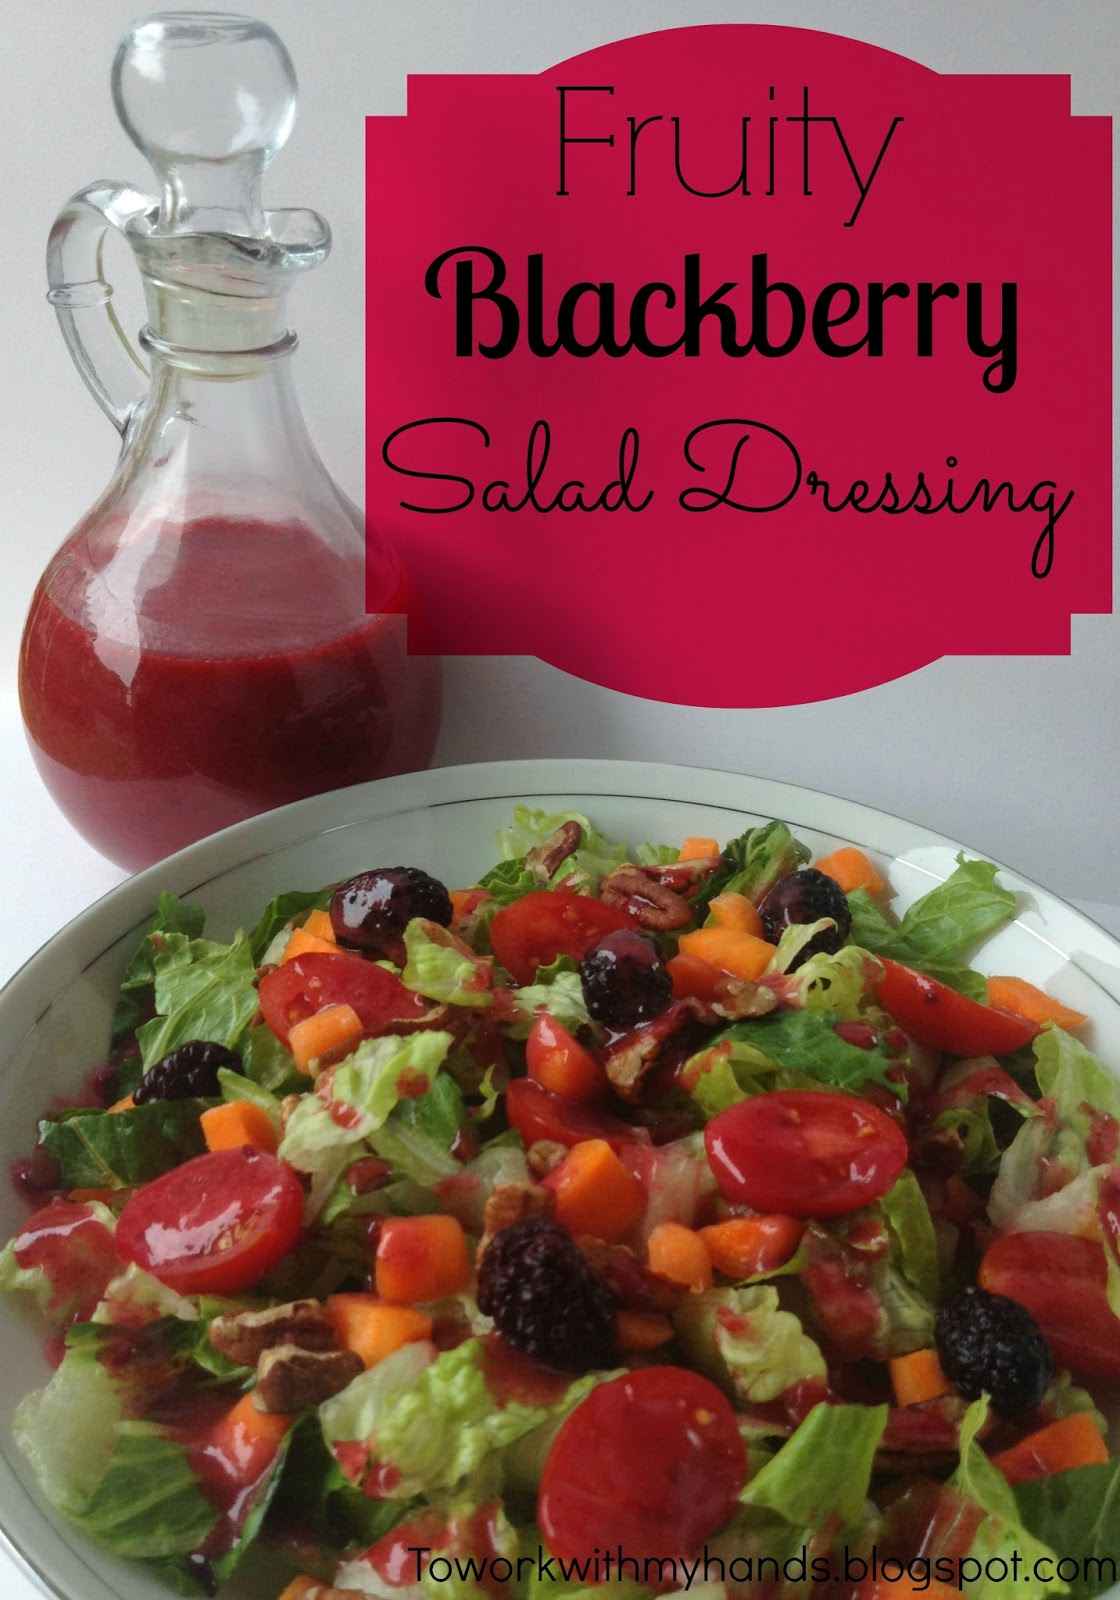 I can't imagine having some fruit around and not tossing it on a fresh salad. And what could be a better topping for a fruit-studded salad than a fruity dressing?